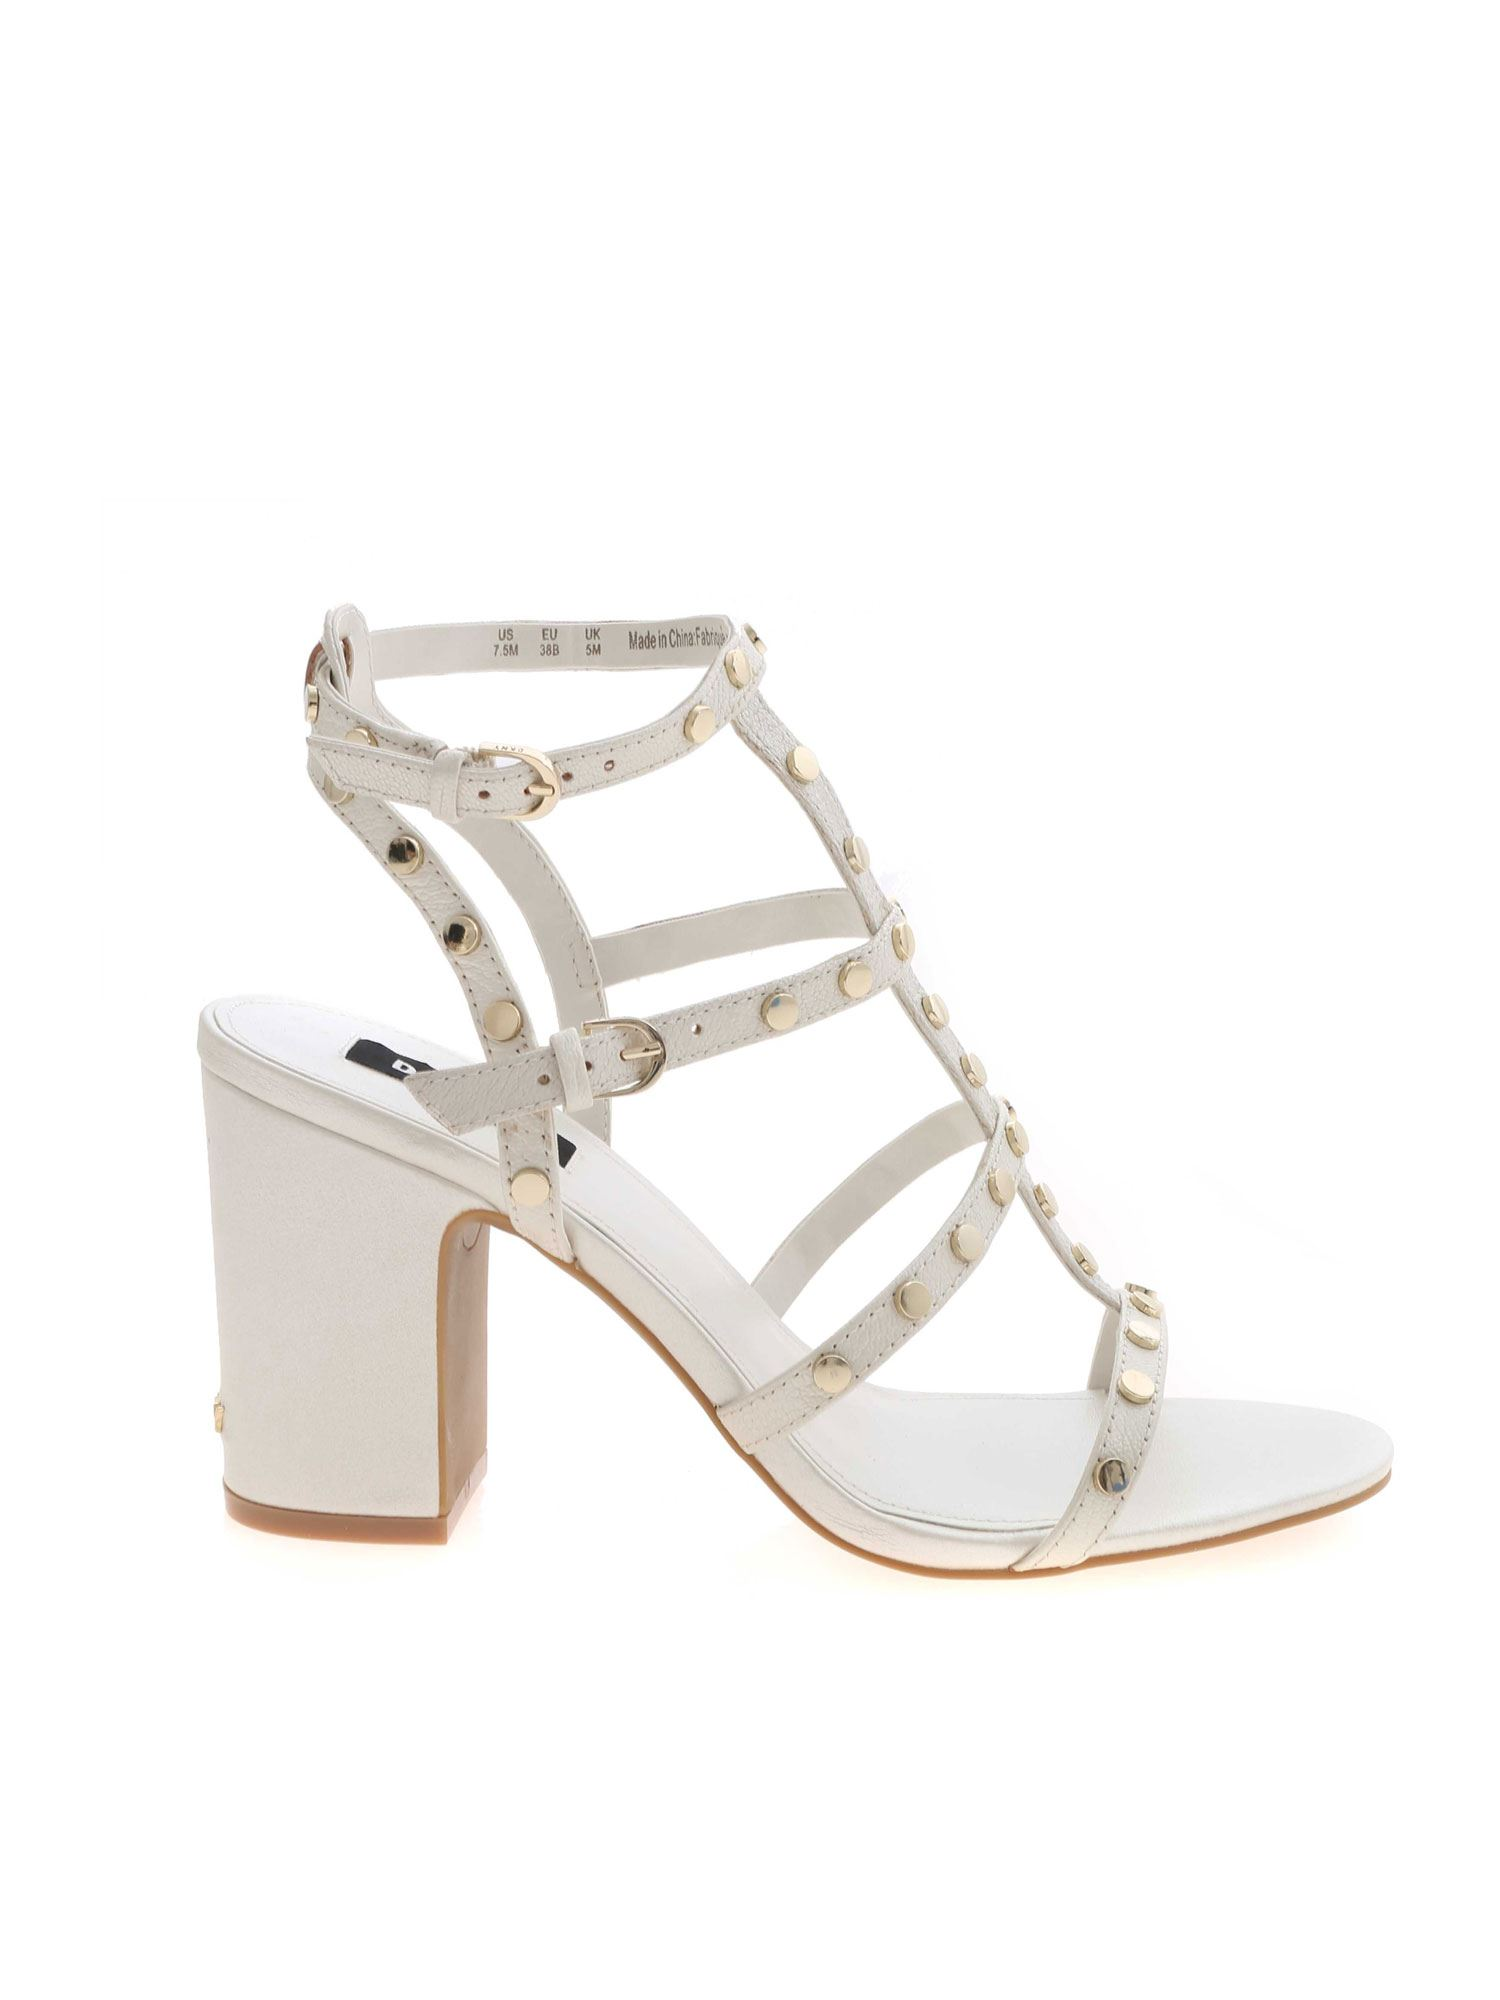 Dkny Leathers HANZ SANDALS IN WHITE